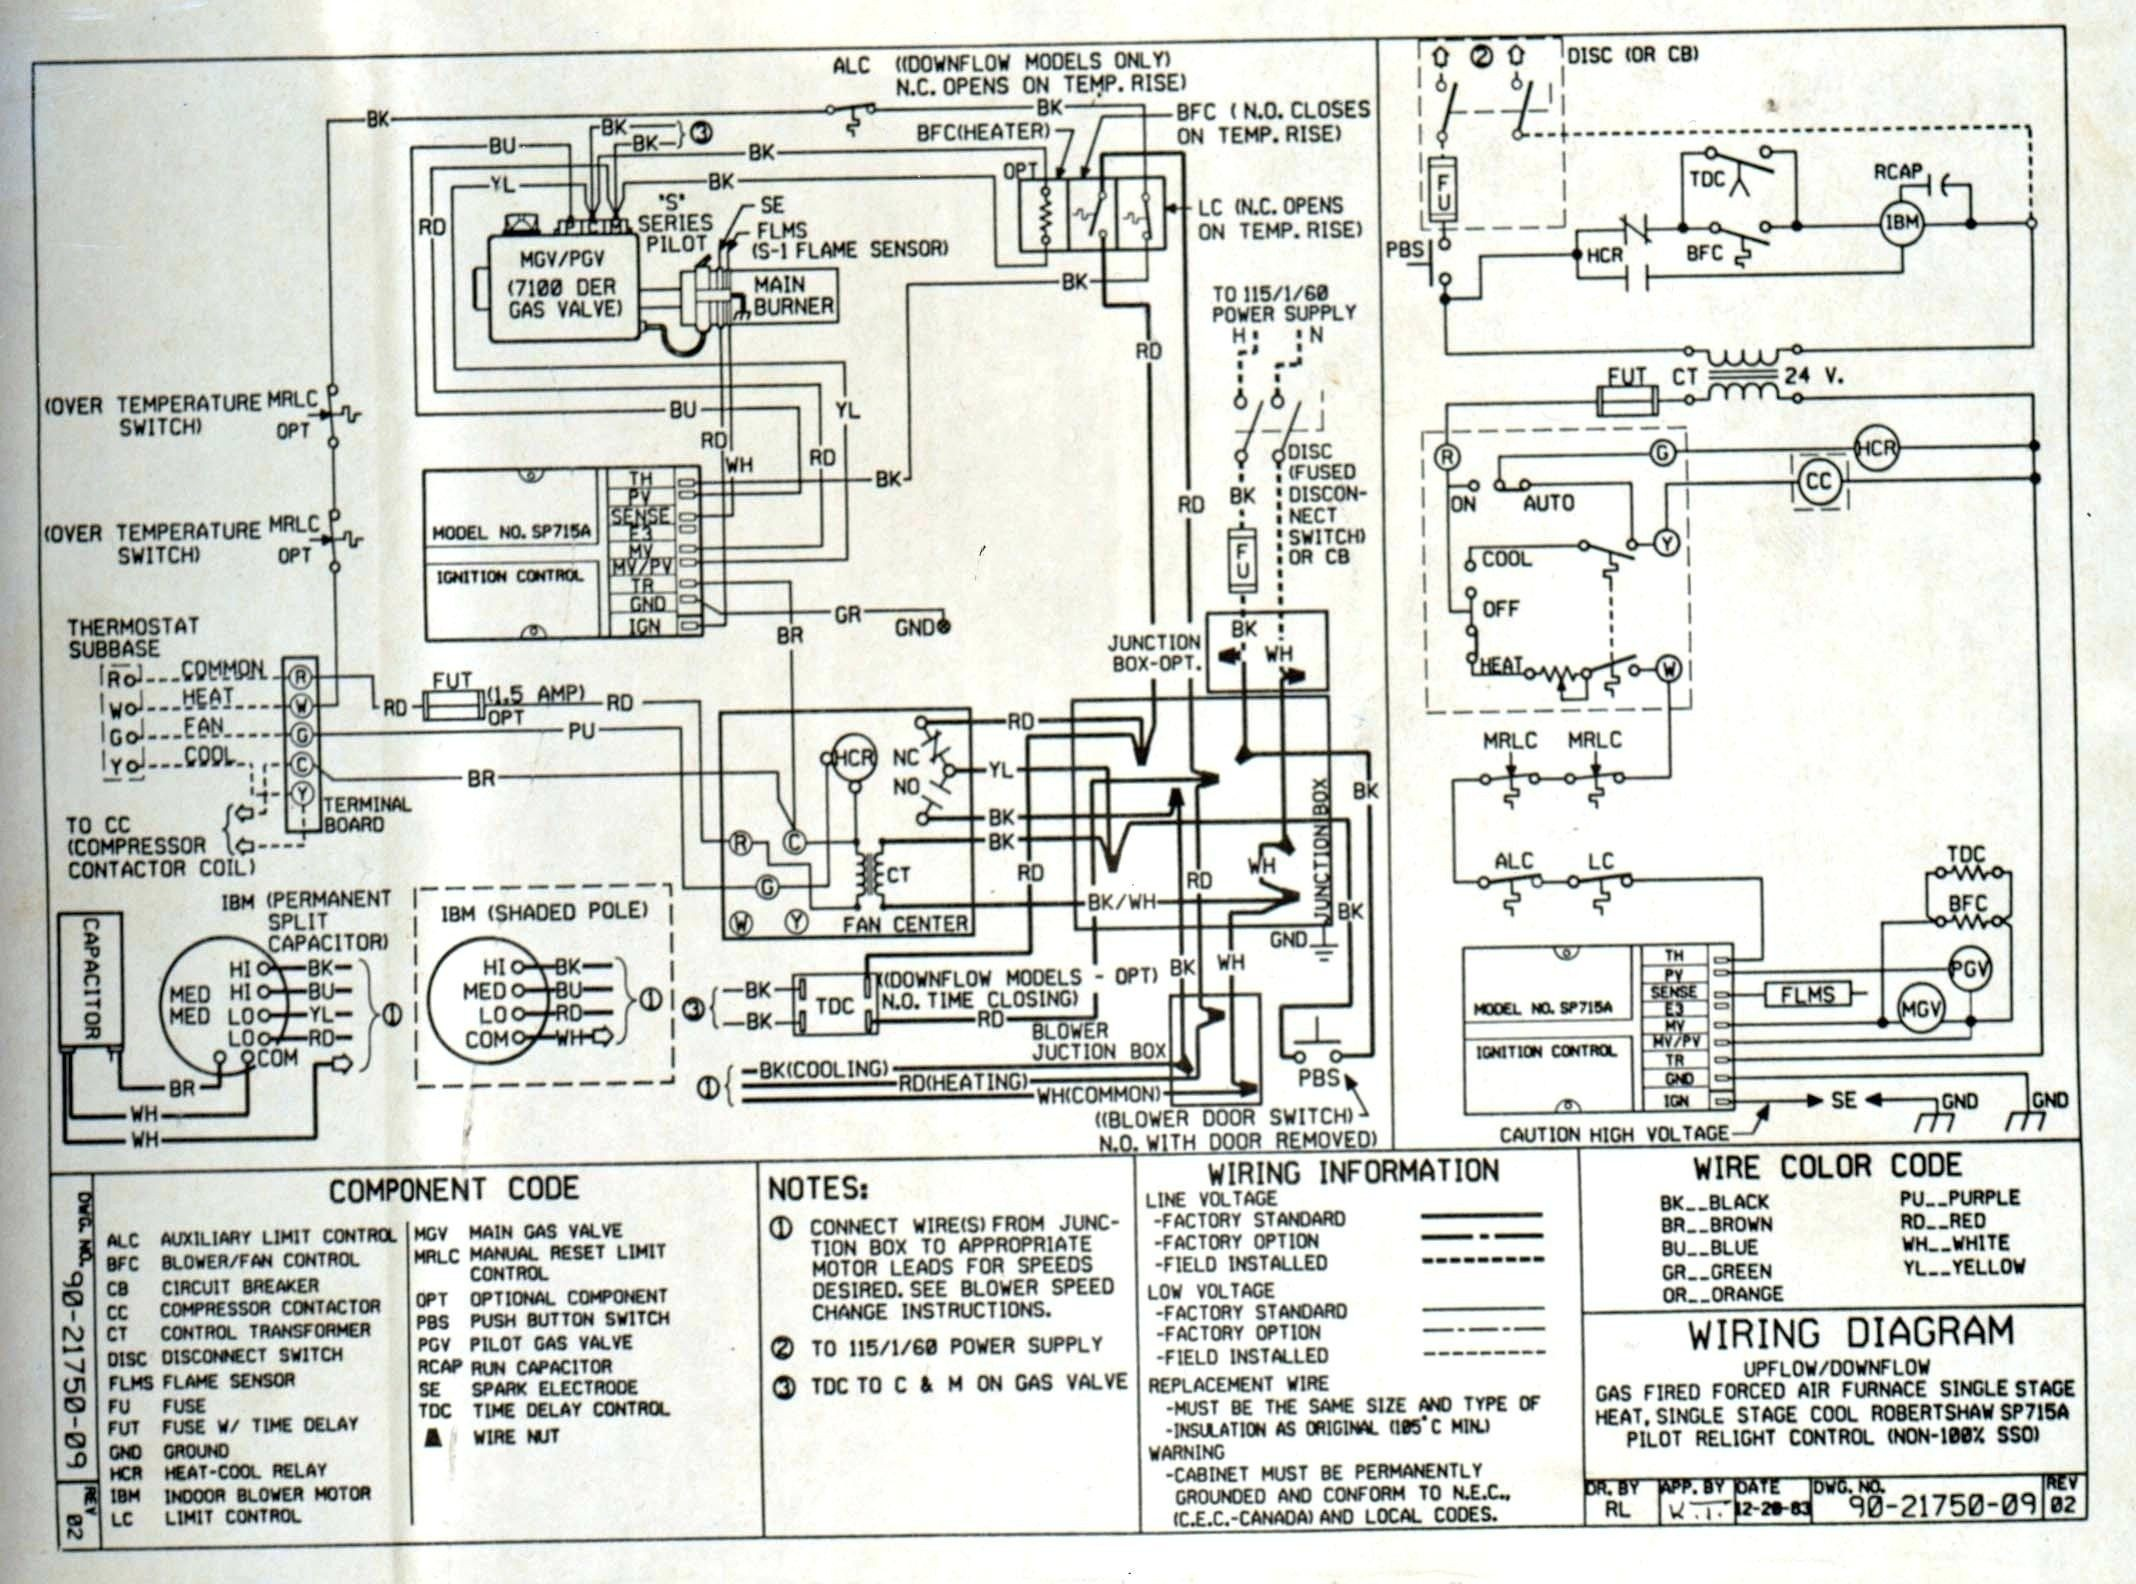 S1 Switch Wiring Diagram 33 Wiring Diagram for Electric Brake Controller Of S1 Switch Wiring Diagram